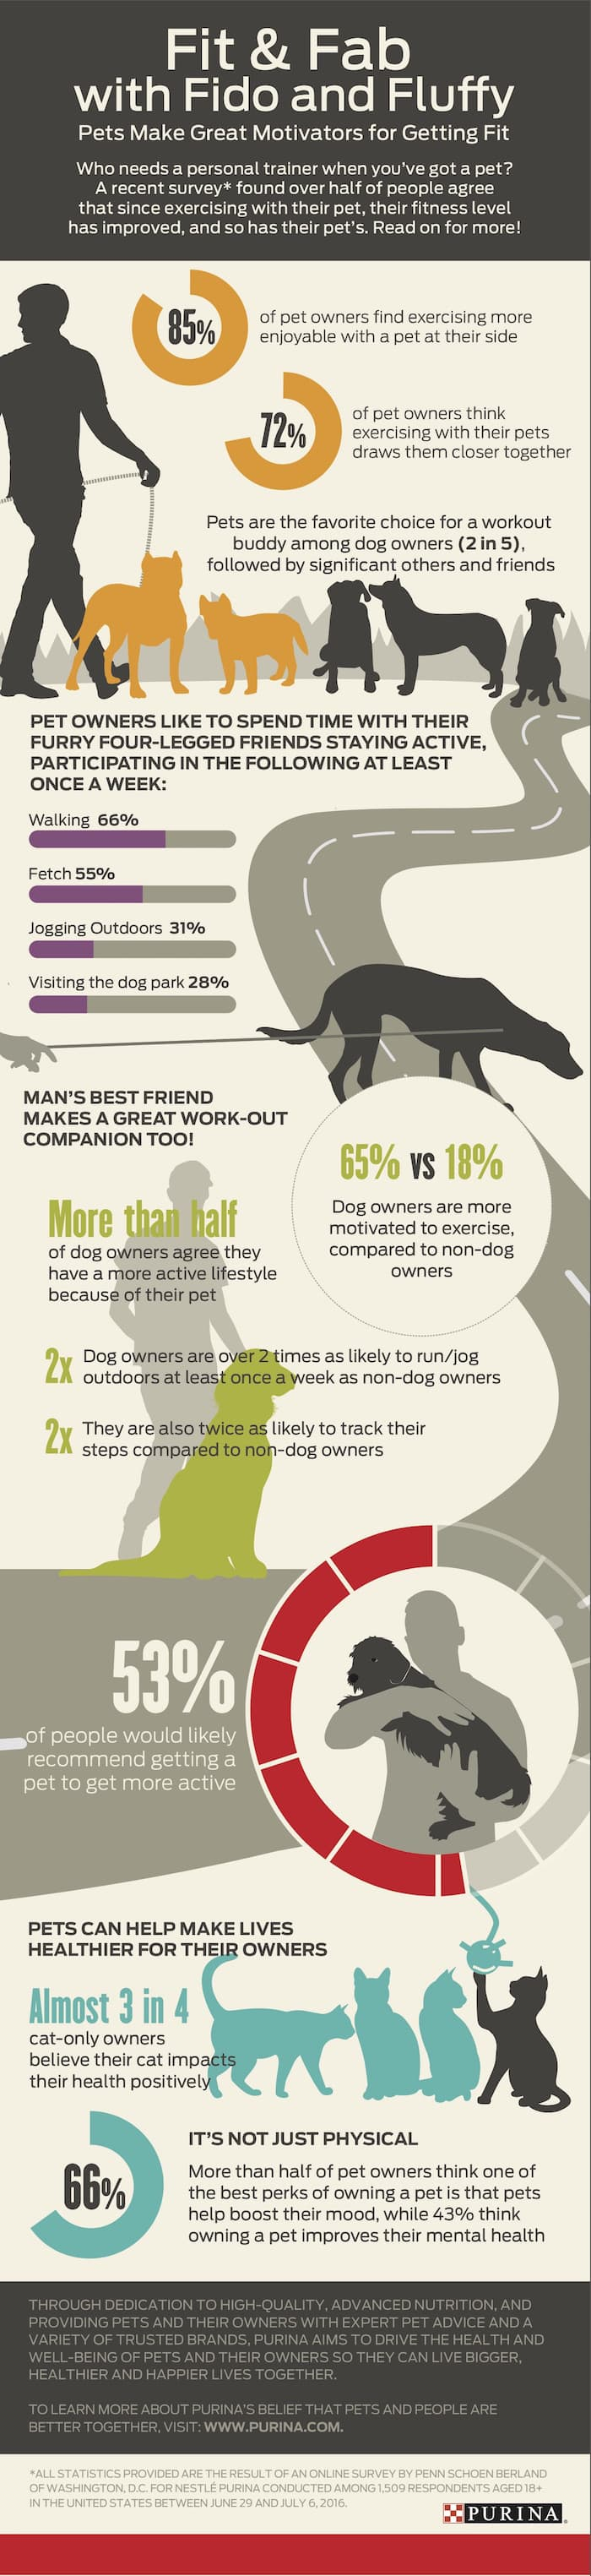 Purina_Fitness with Pets_Infographic